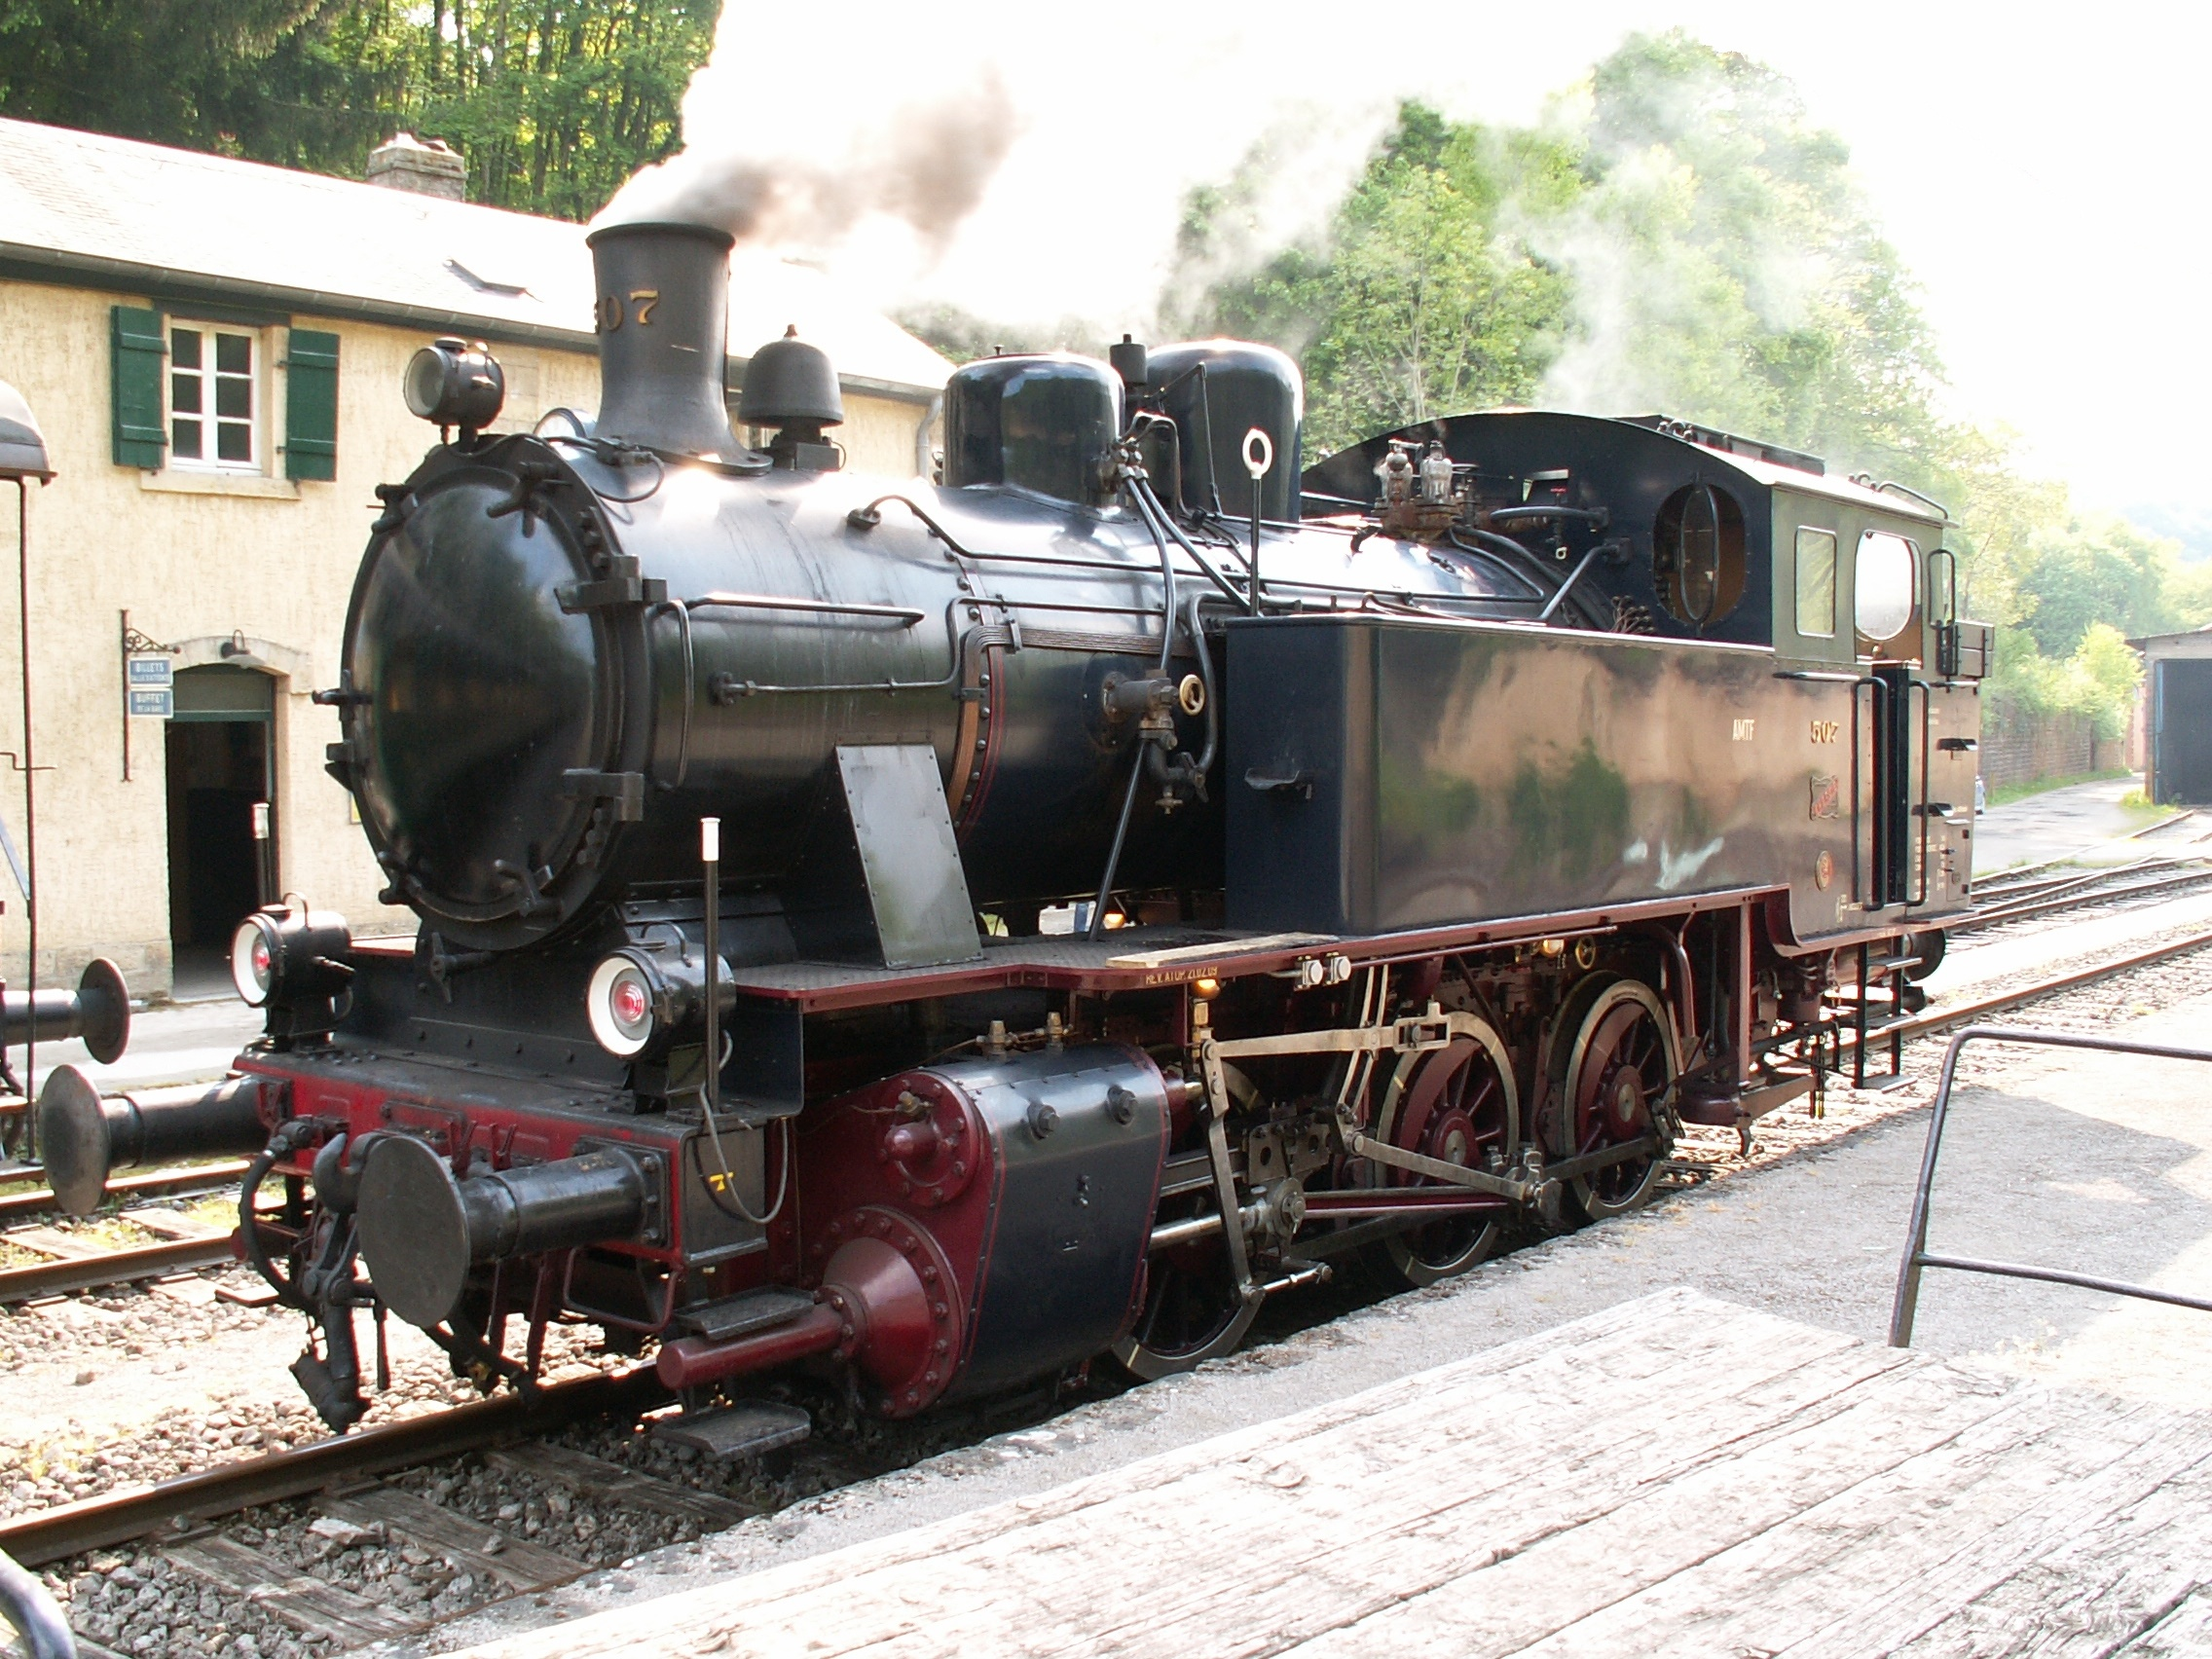 Image of an old steam locomotive